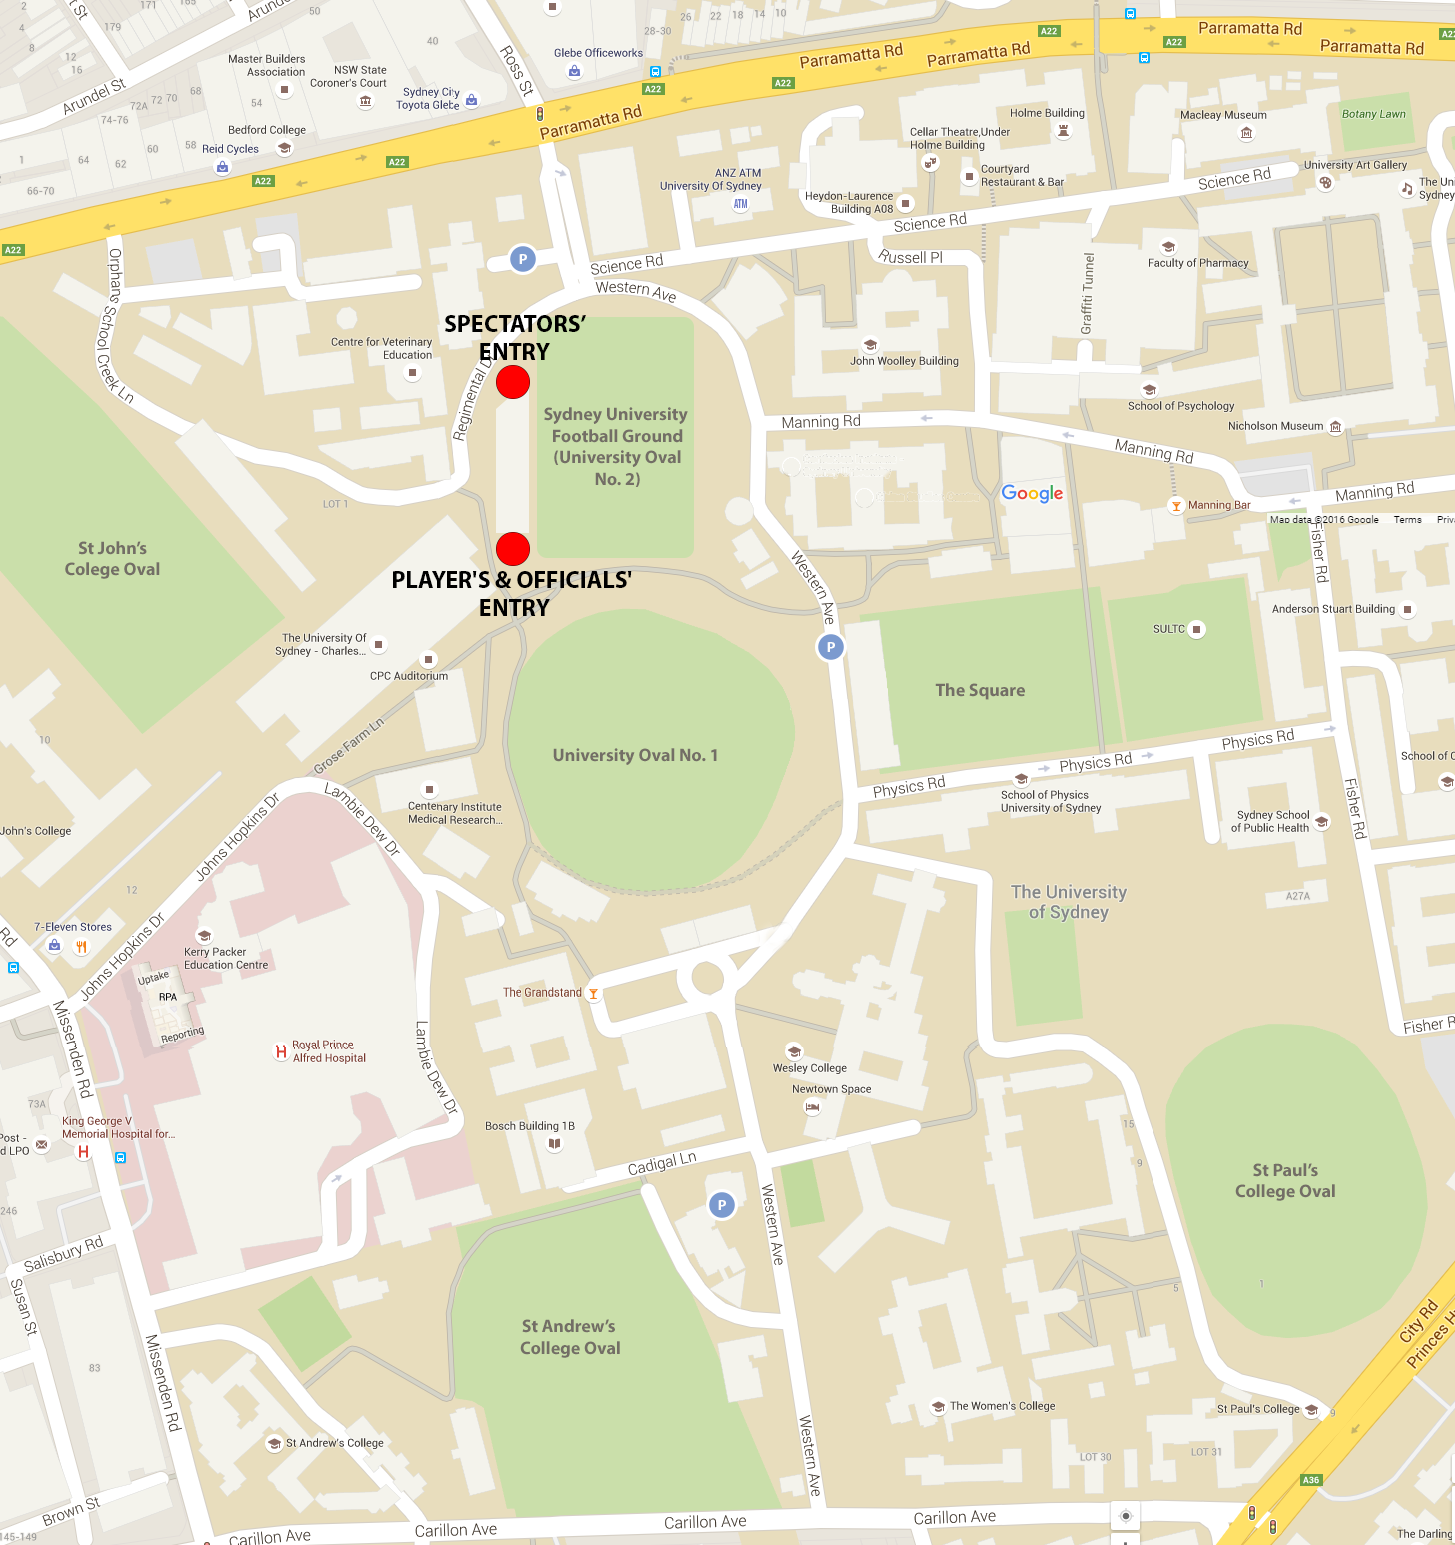 Map of the University of Sydney, featuring the Sydney Uni Football Ground